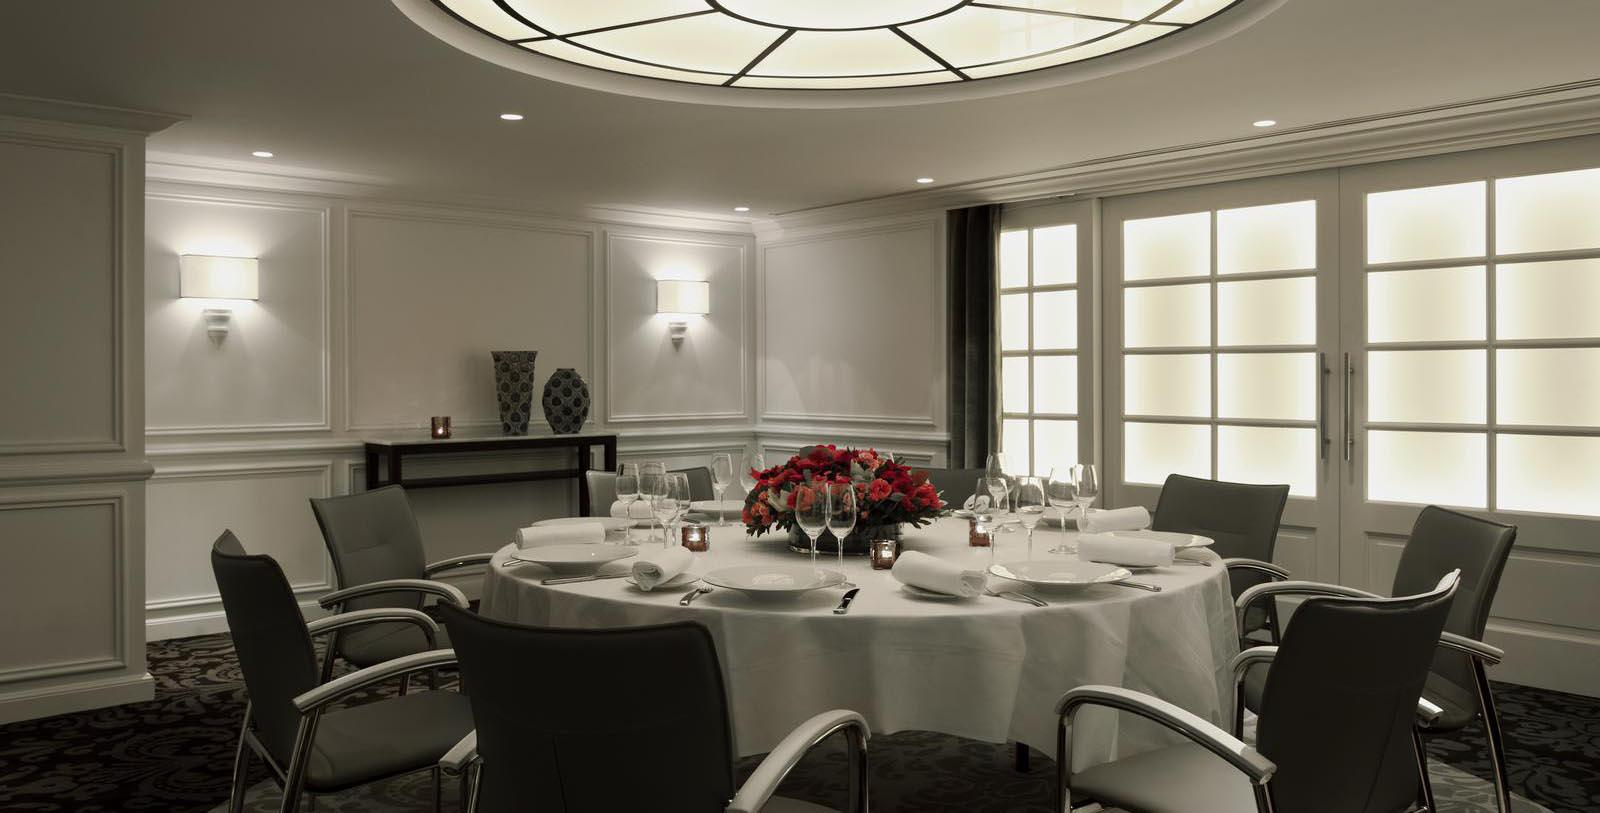 Image of Private Dining at Sofitel Paris Baltimore Tour Eiffel, 1892, Member of Historic Hotels Worldwide, in Paris, France, Experience